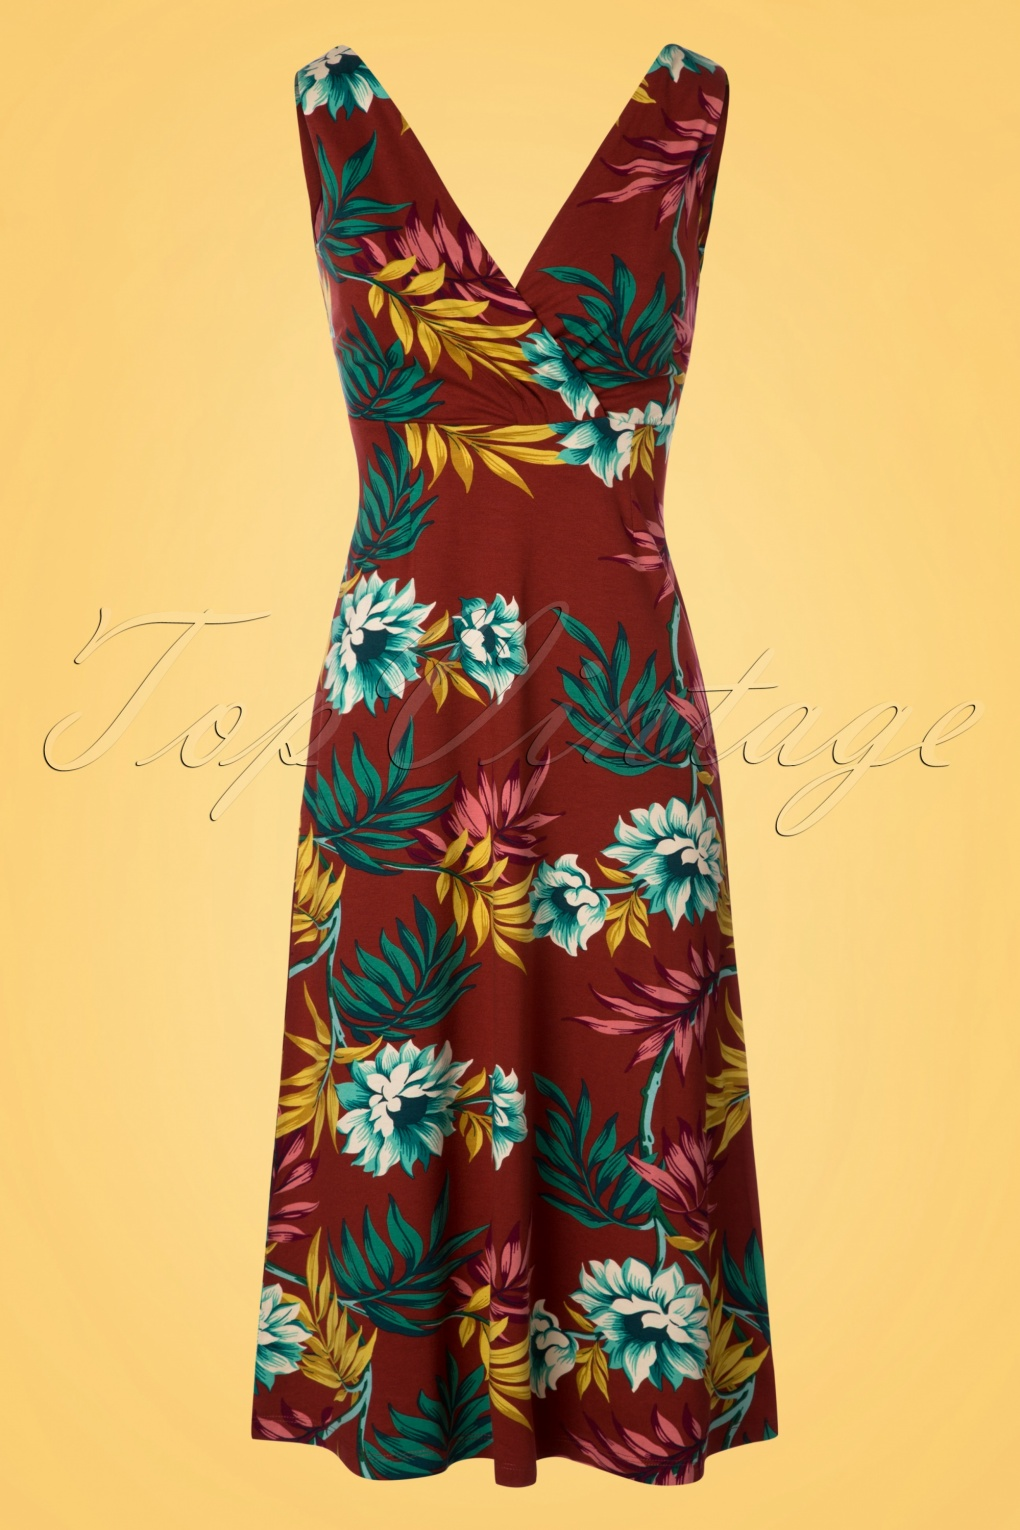 Plus Size Vintage Dresses, Plus Size Retro Dresses 70s Ginger Marisol Midi Dress in Rio Red £84.10 AT vintagedancer.com